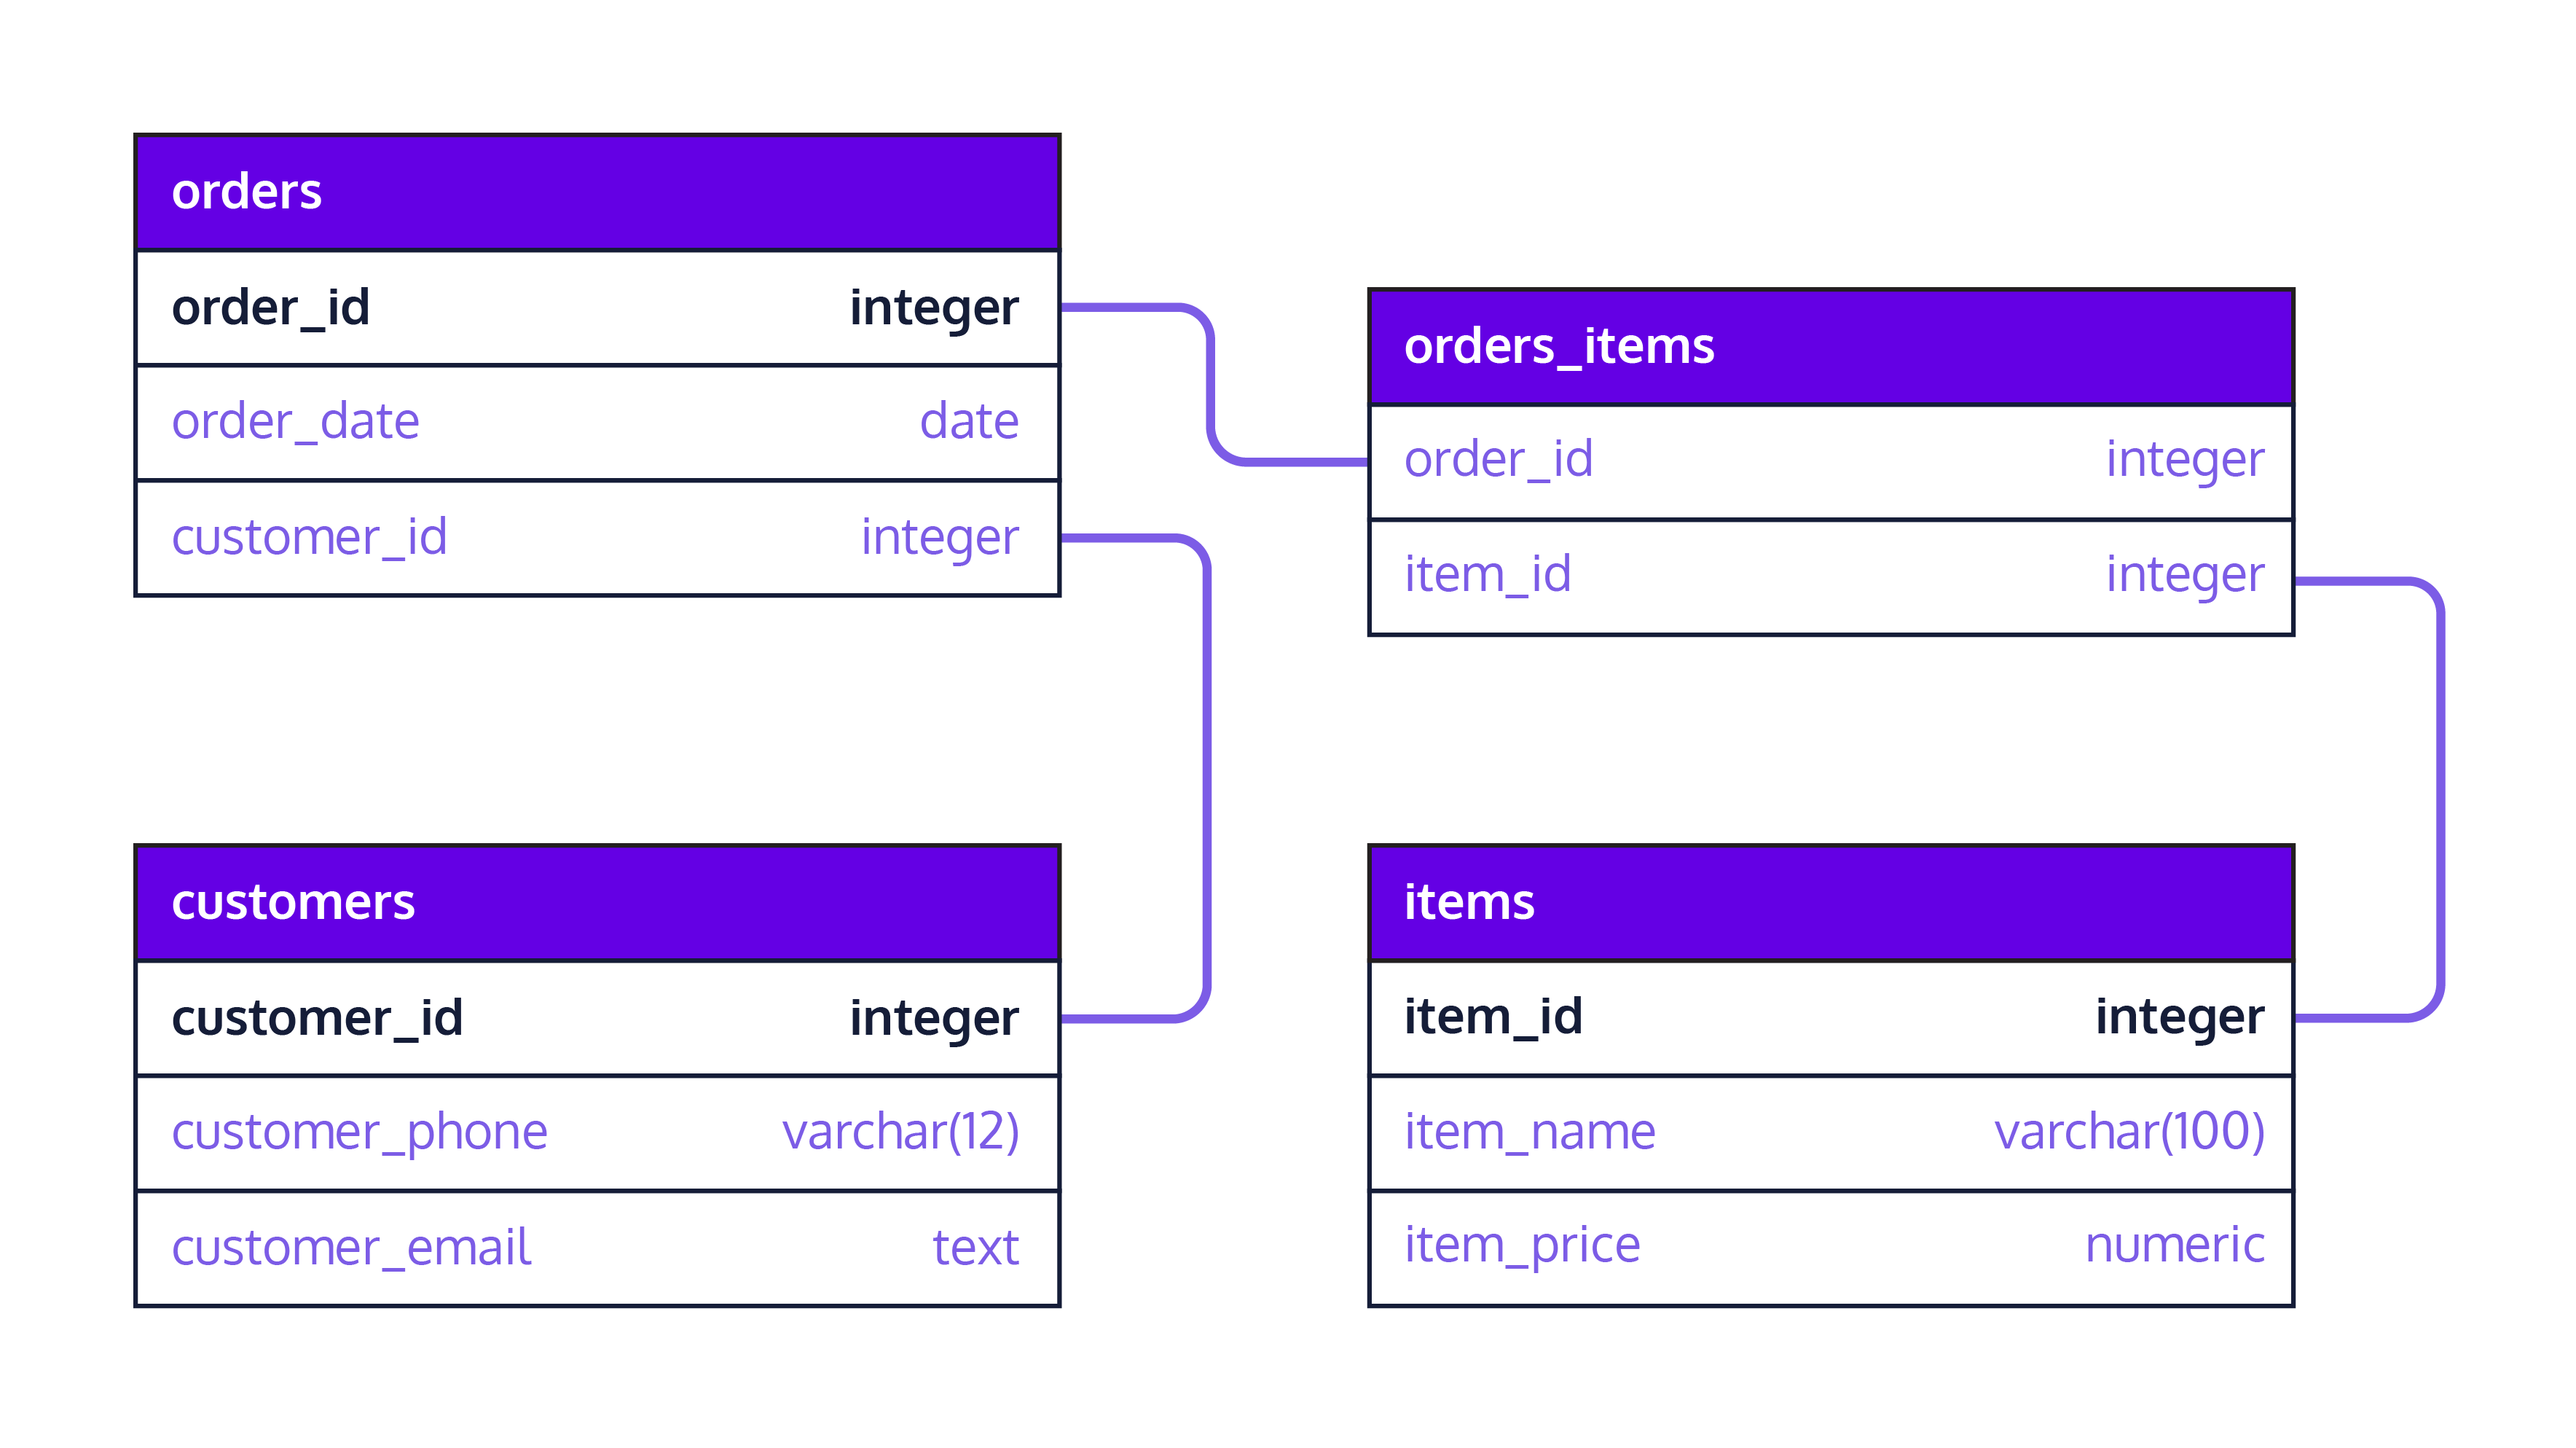 This image shows a database with four tables named orders, customers, orders_items, and items. The four tables are related via lines that connect relevant columns to each other.